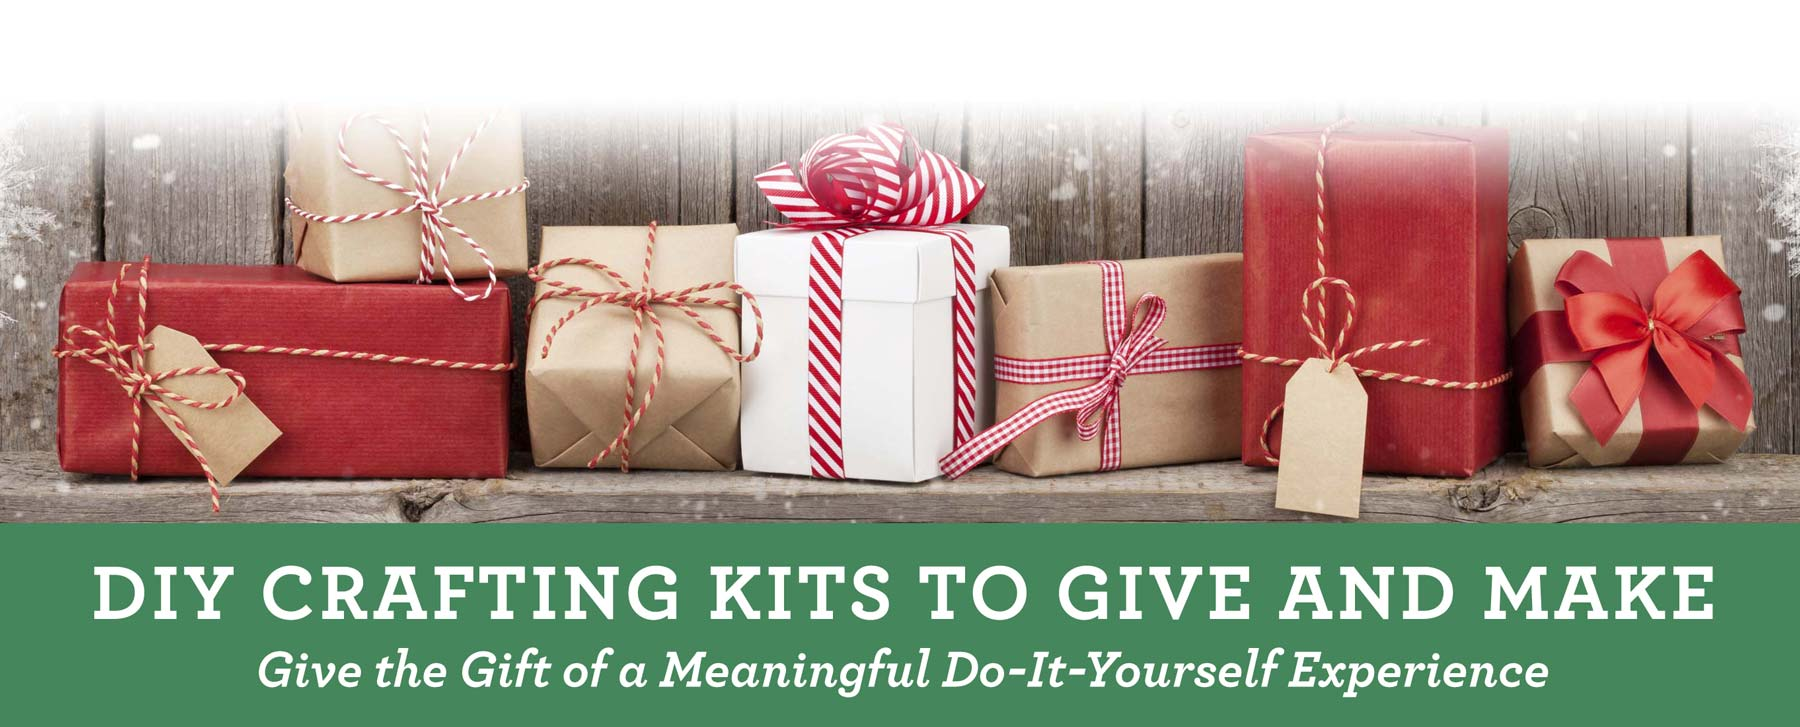 We Make Kits for DIY - Over 100 Do-It-Yourself Kits to Choose From